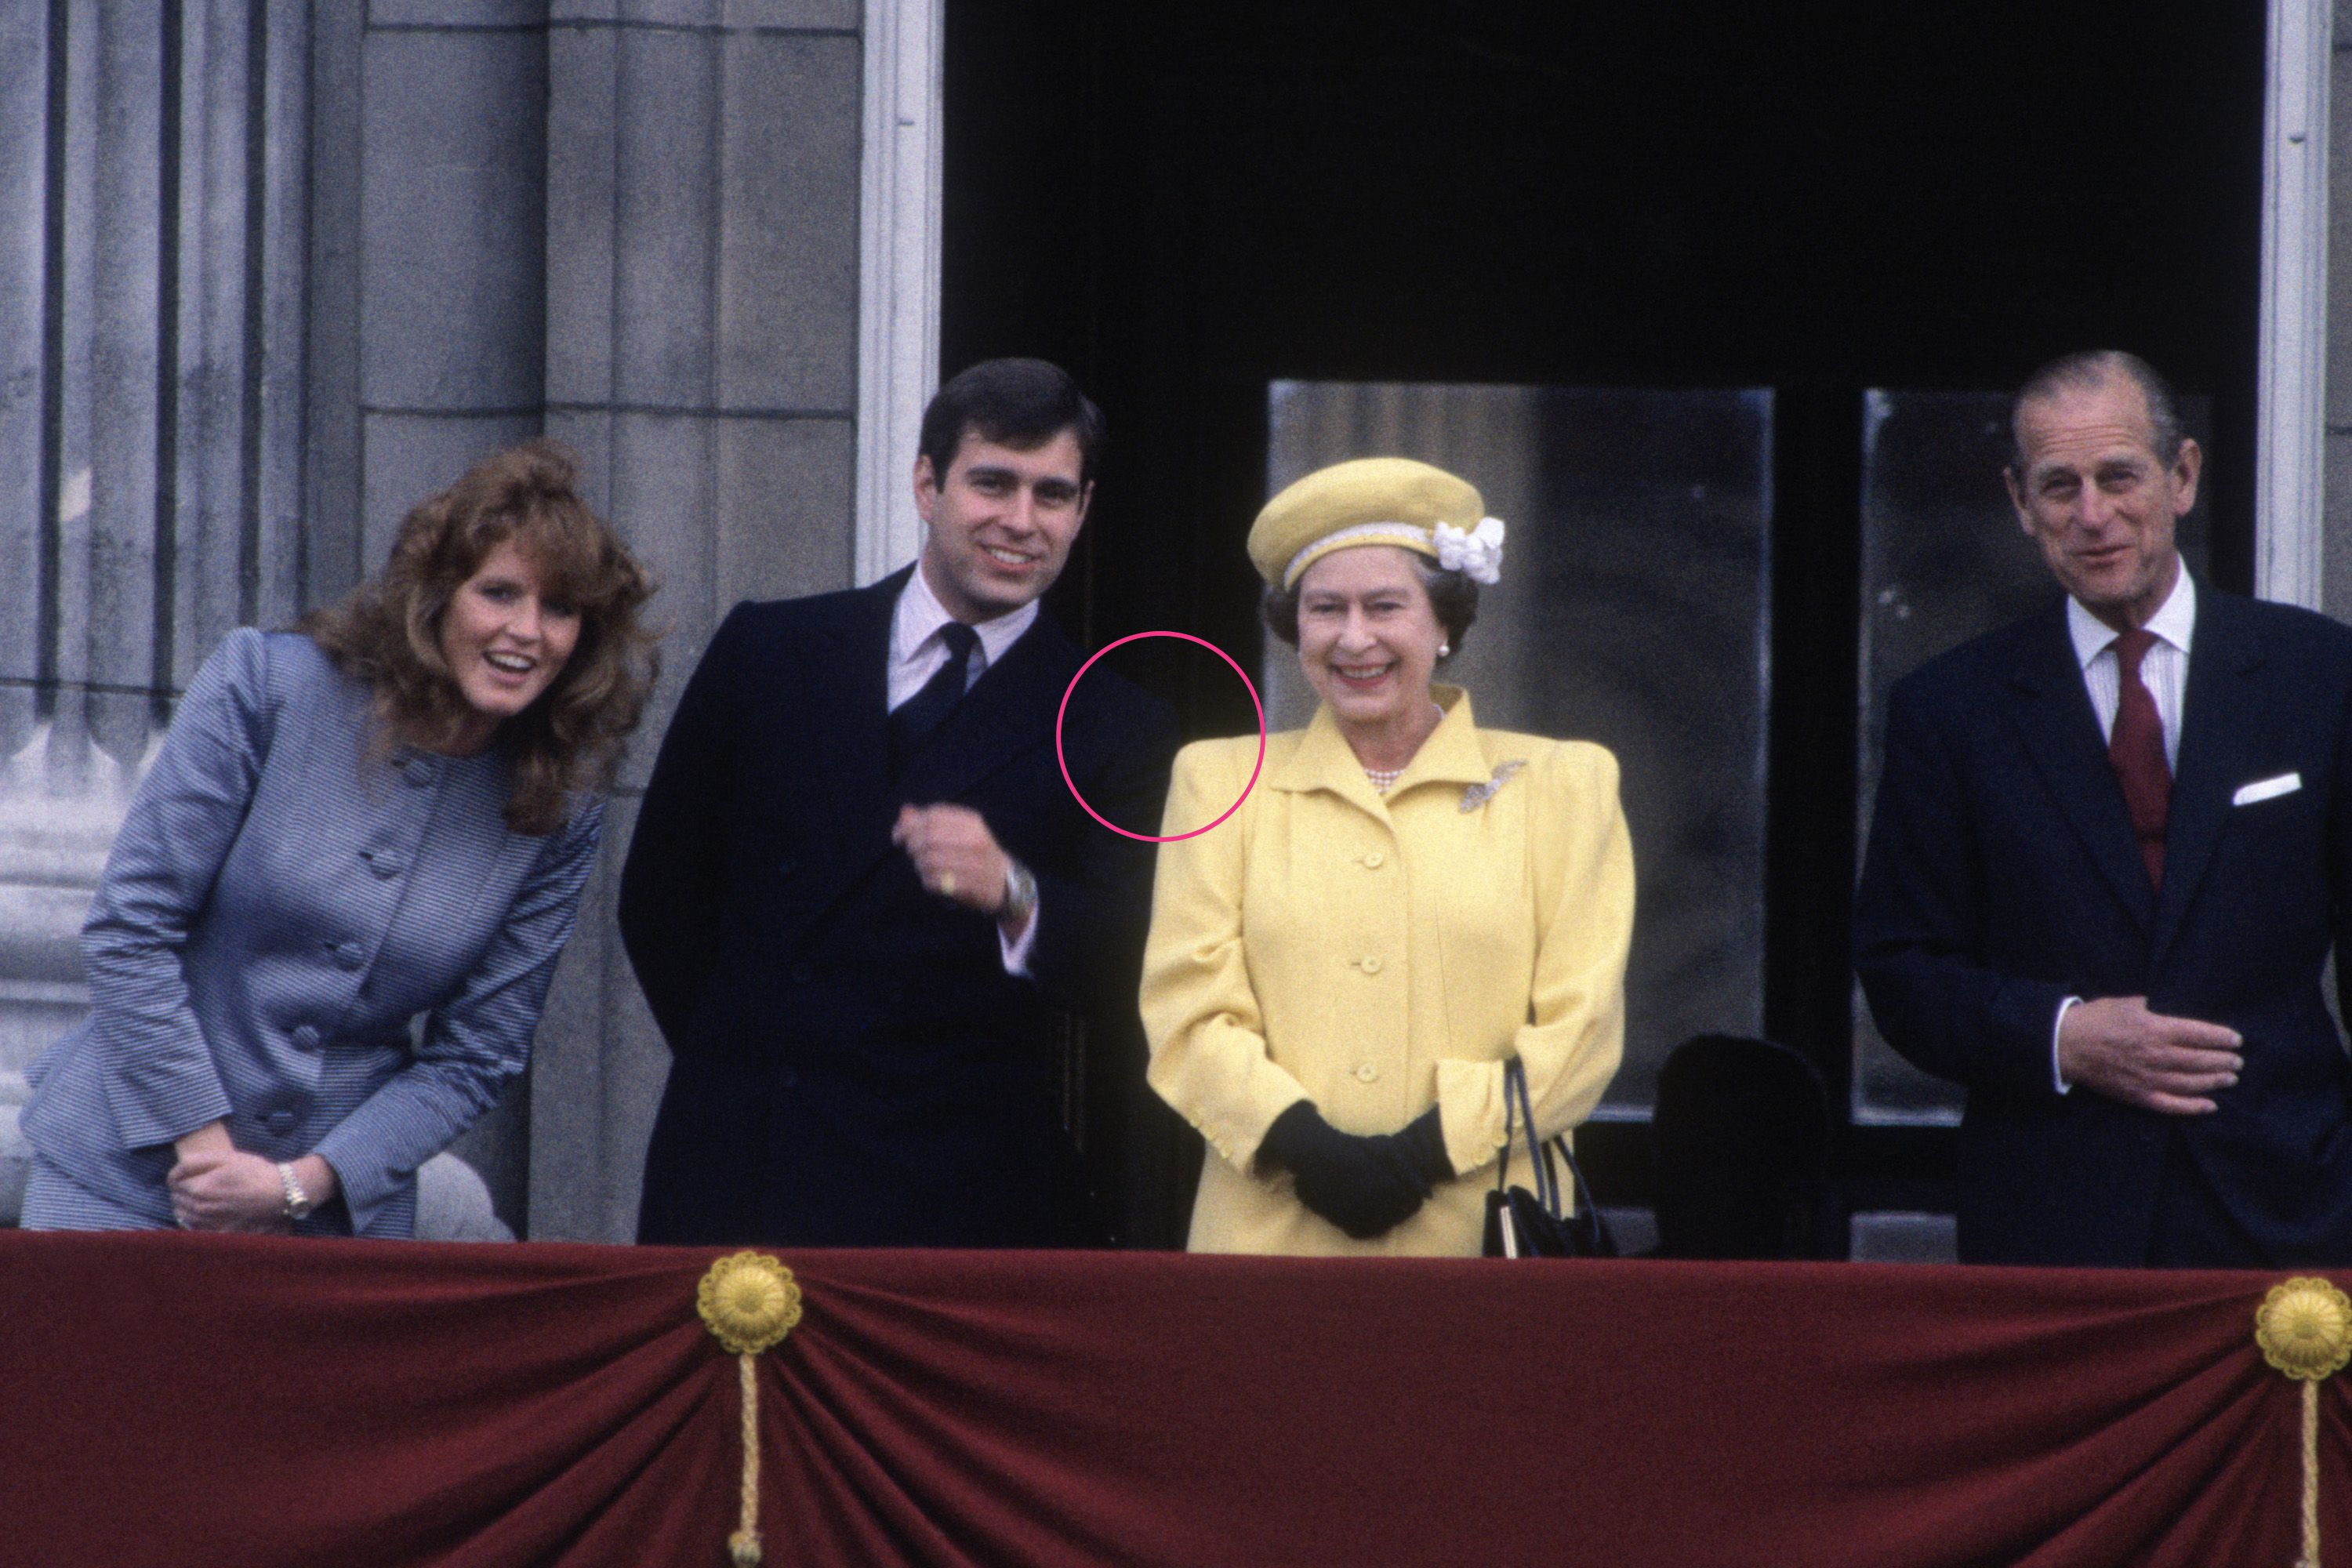 Body Language Experts Analyze Queen Elizabeth's Relationship With Her Children PhoBody Language Experts Analyze Queen Elizabeth's Relationship With Her Children Photo (C) GETTYto (C) GETTY